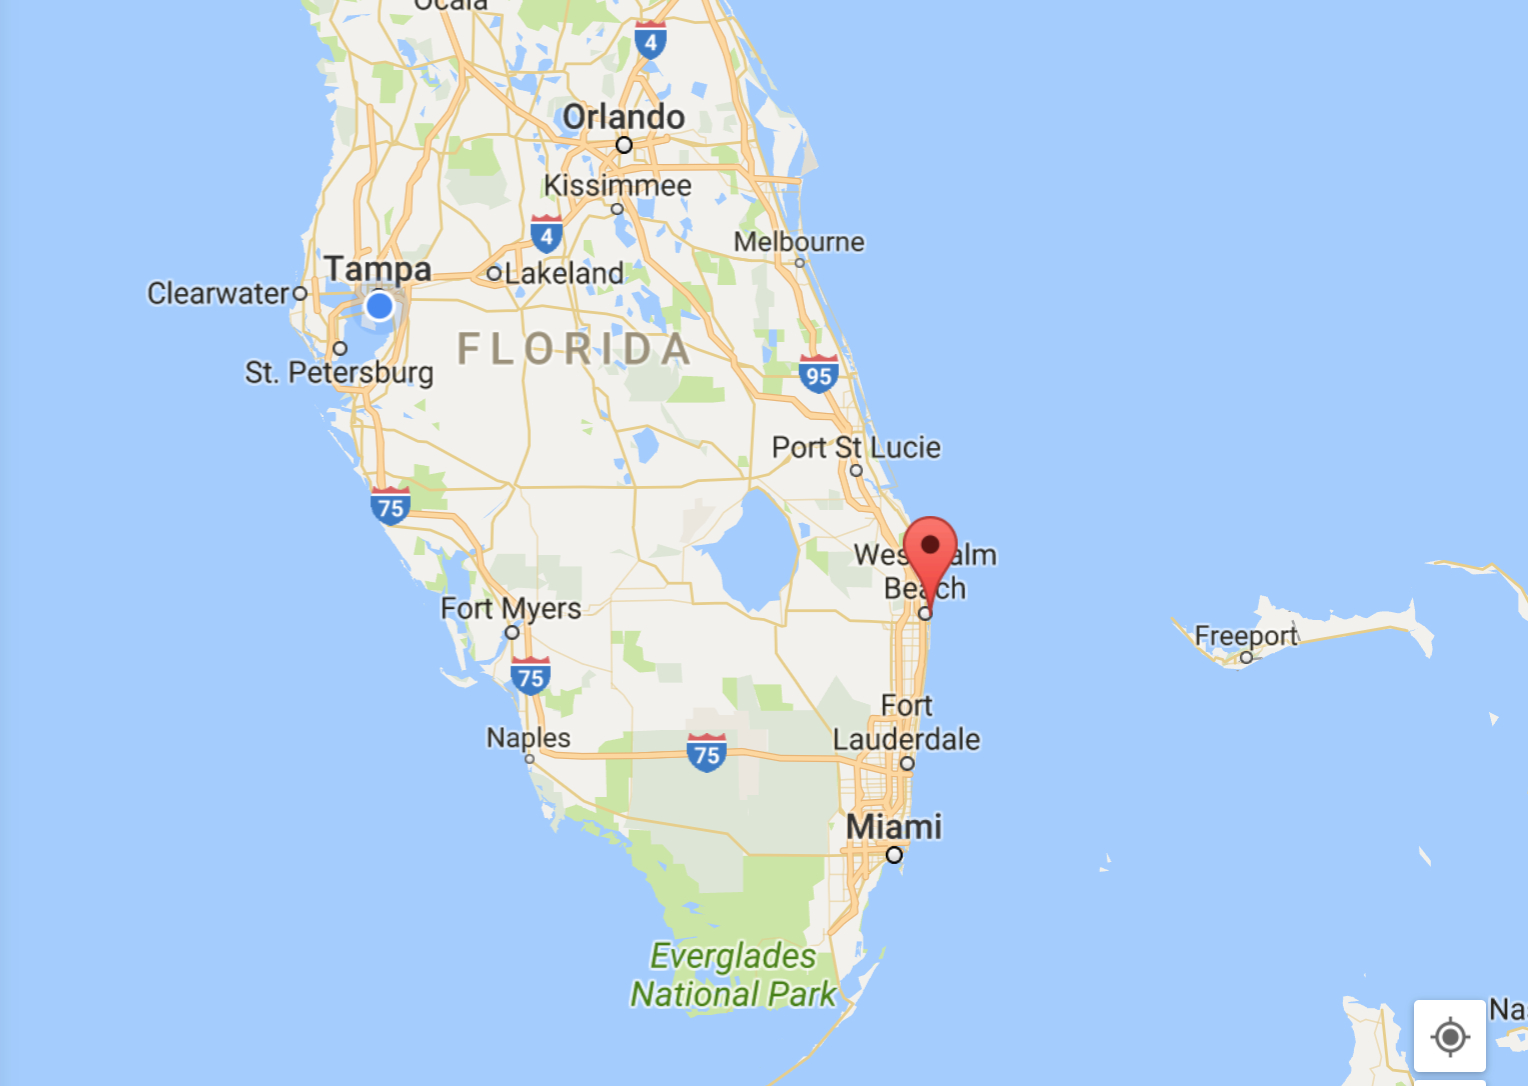 Palm Beach: The Breakers, The Bunker, And The Everglades Club - Seaside Florida Google Maps